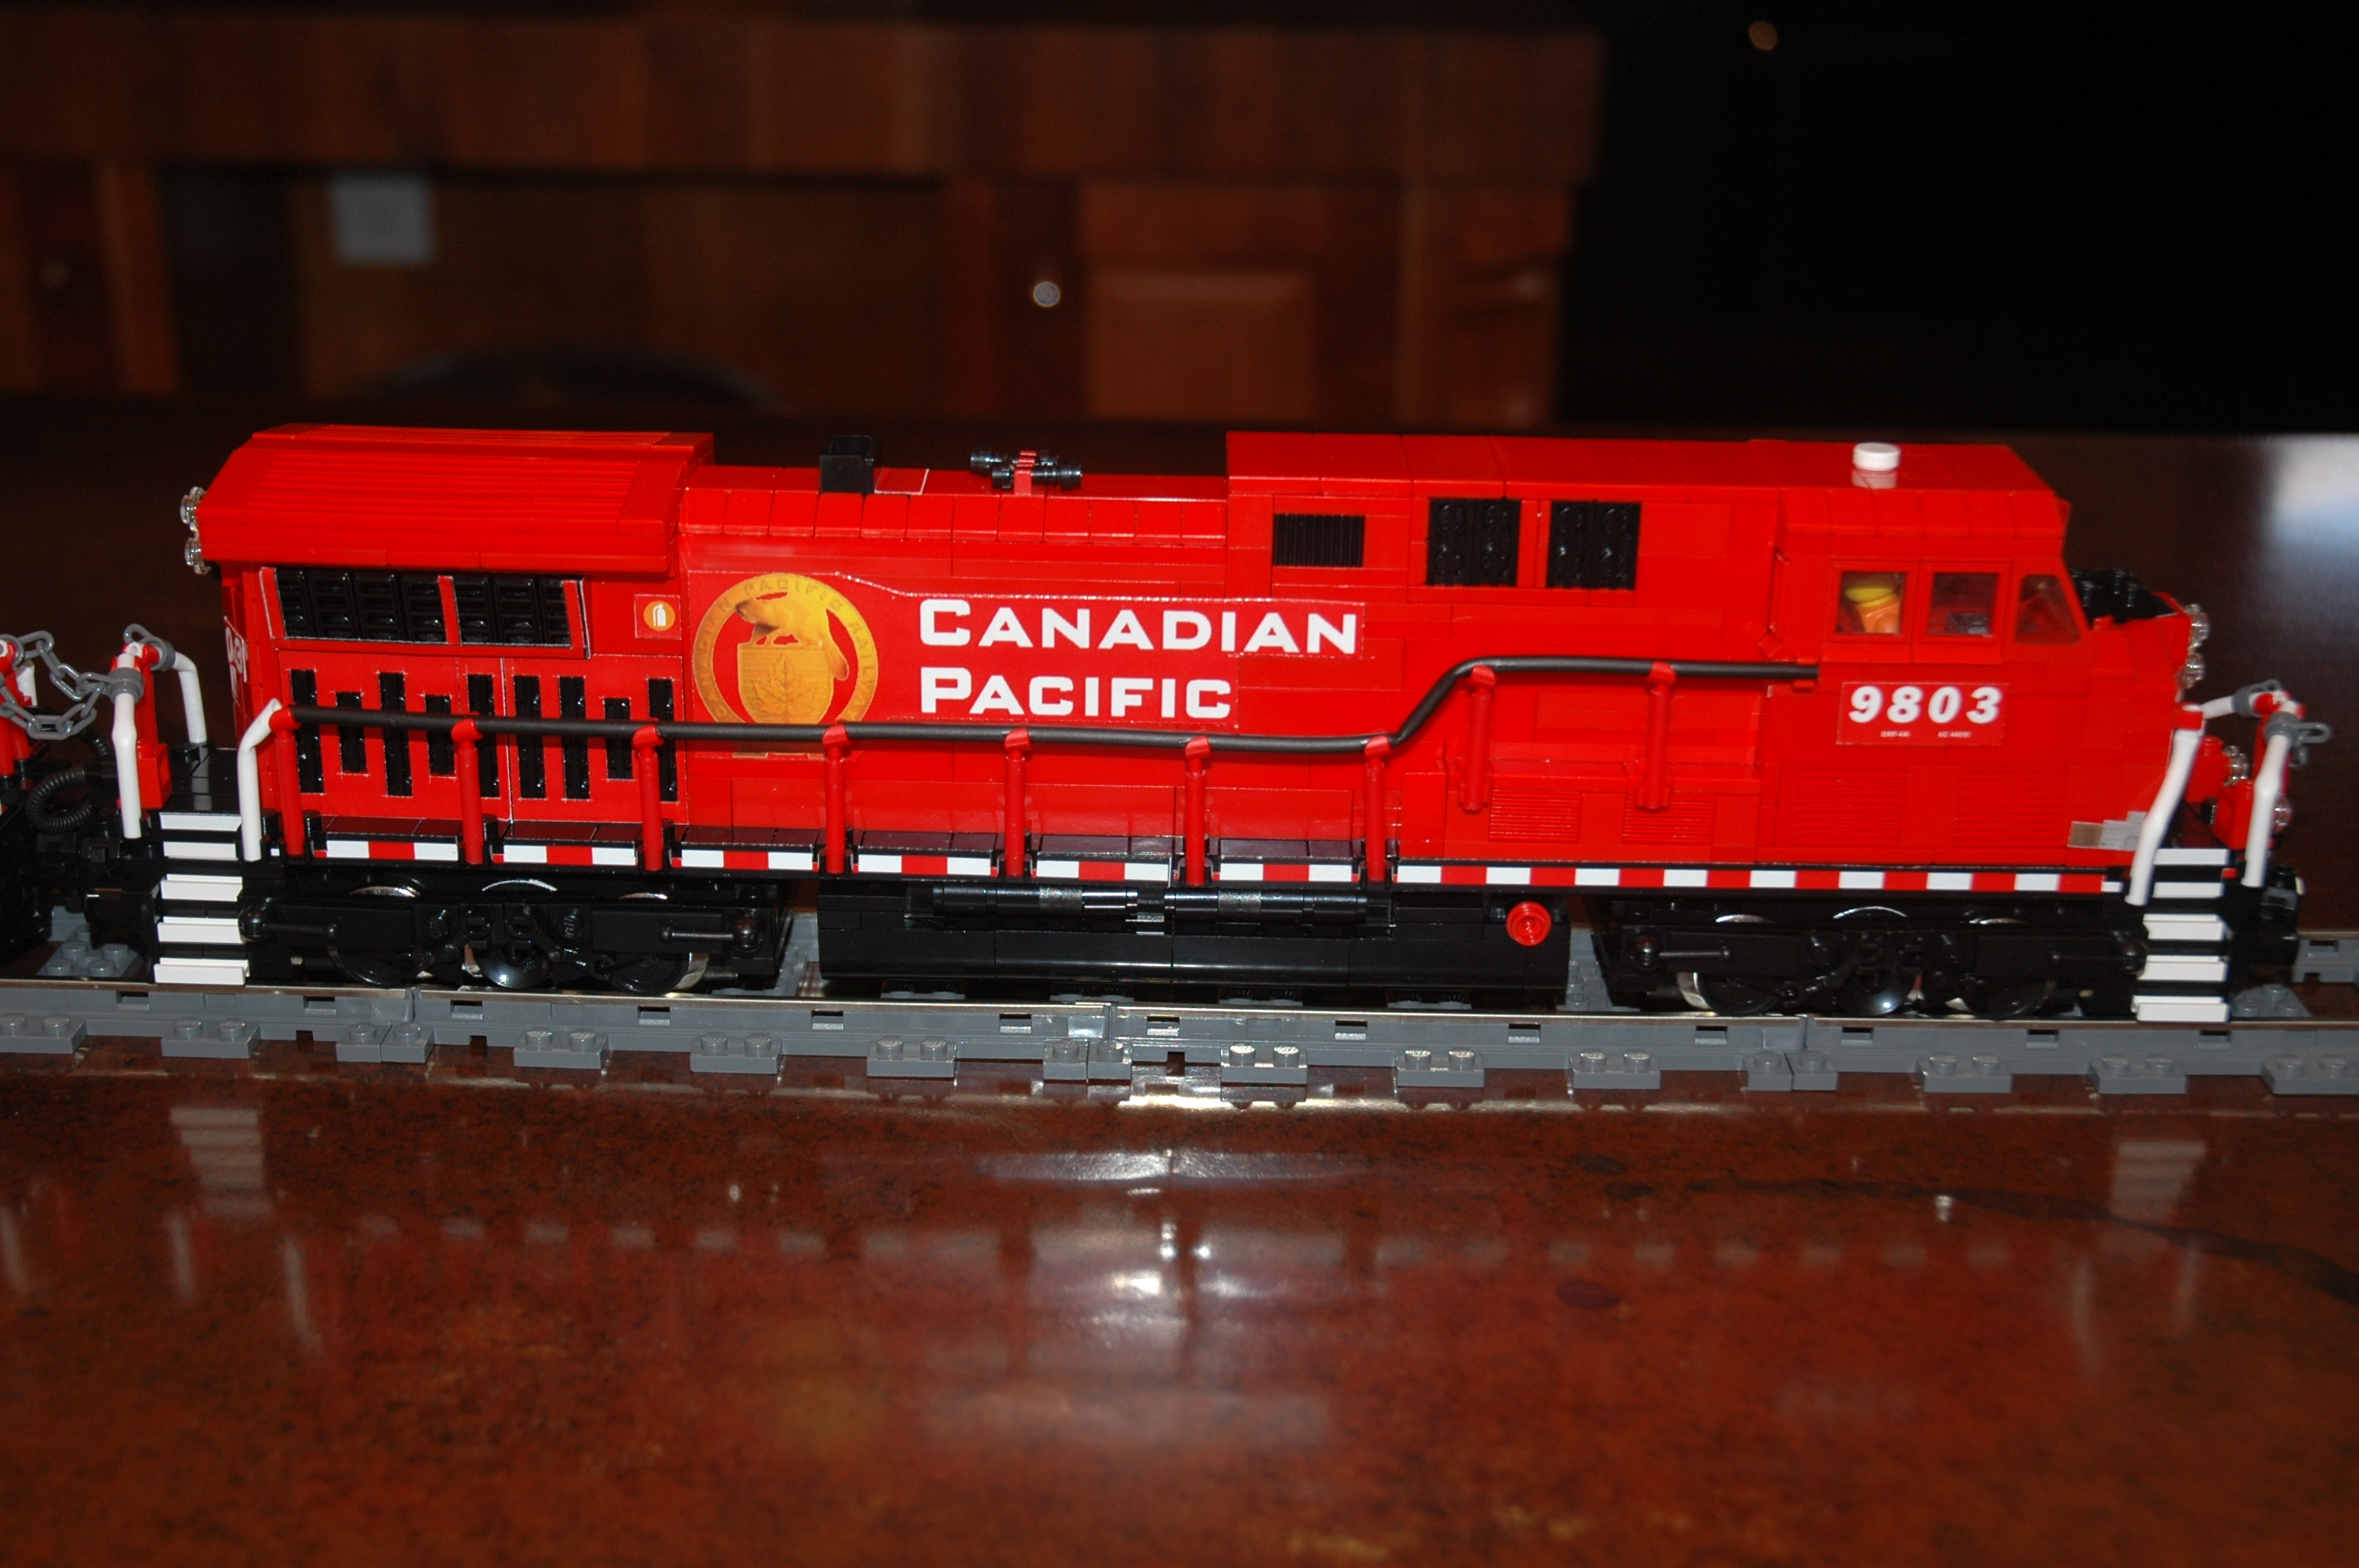 lego_cp_freight_engine_ac4400cw_cp9803_right.jpg